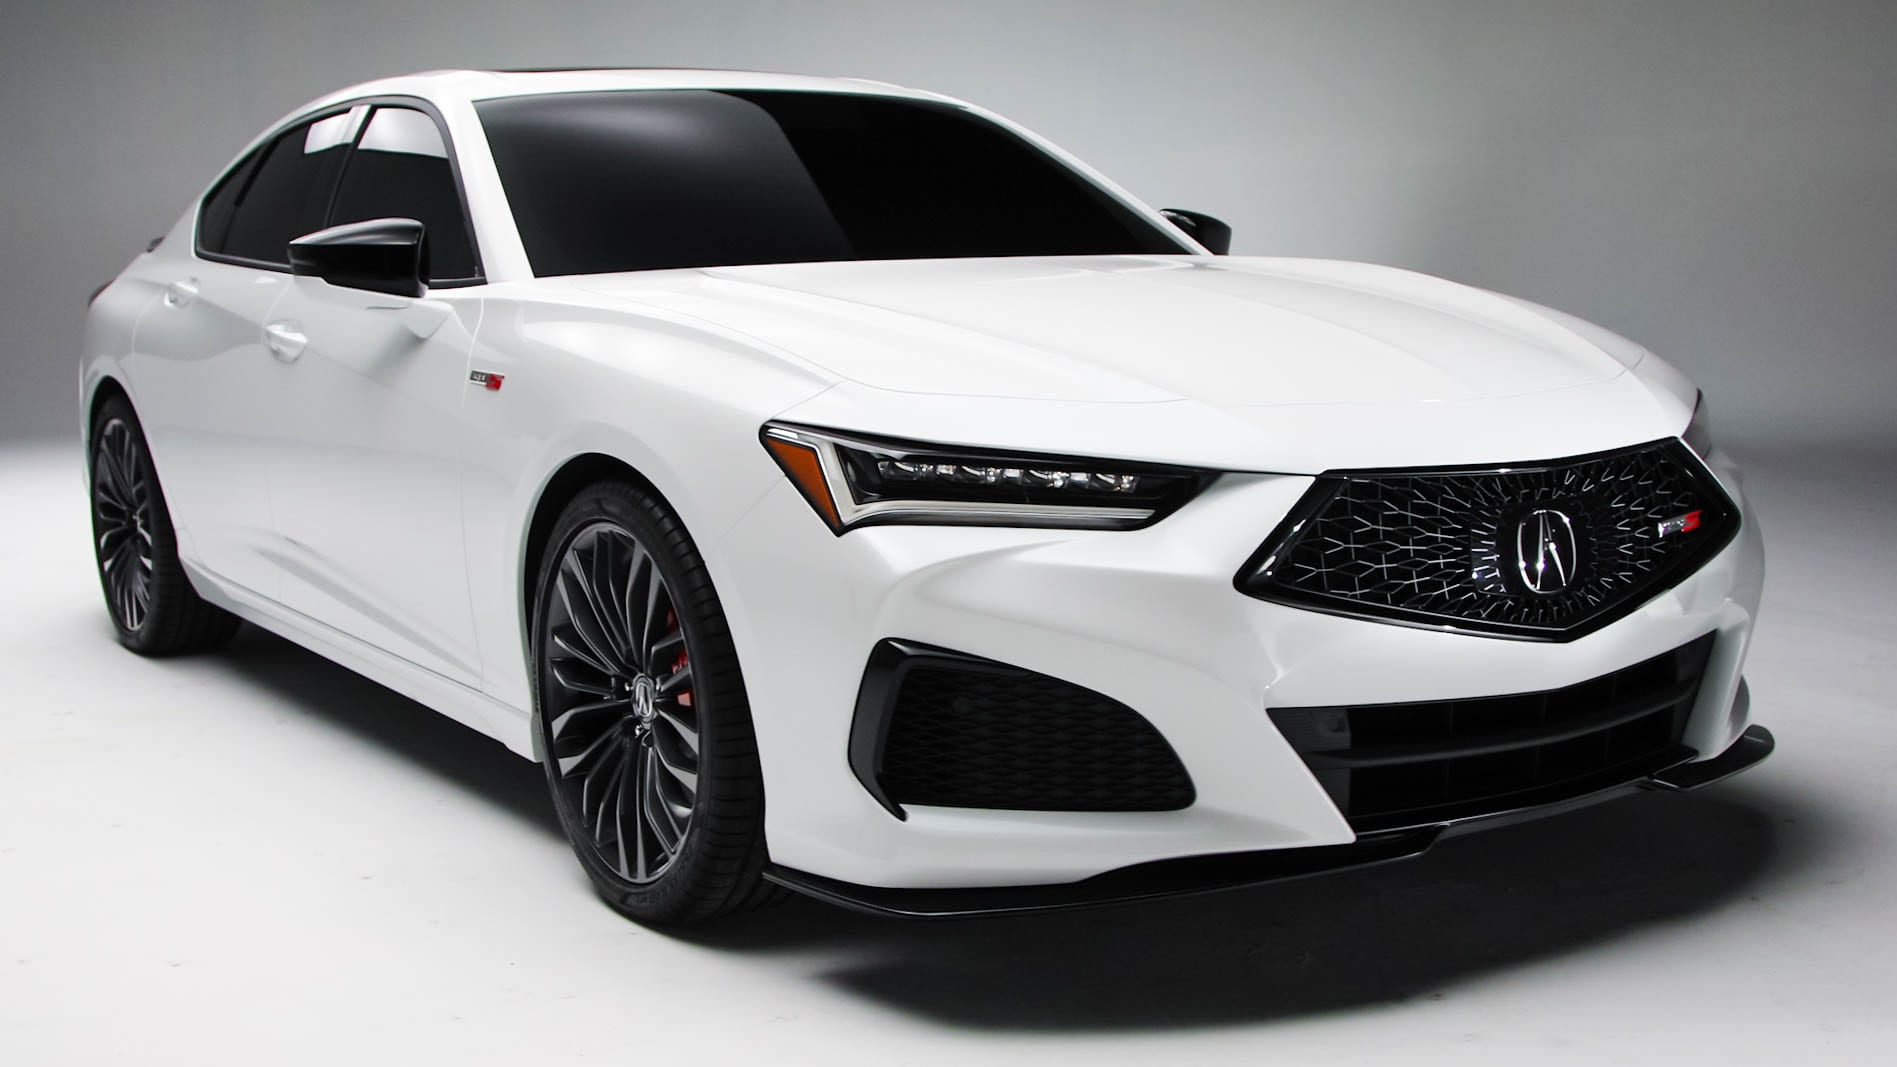 The 2021 Acura TLX Type S in white